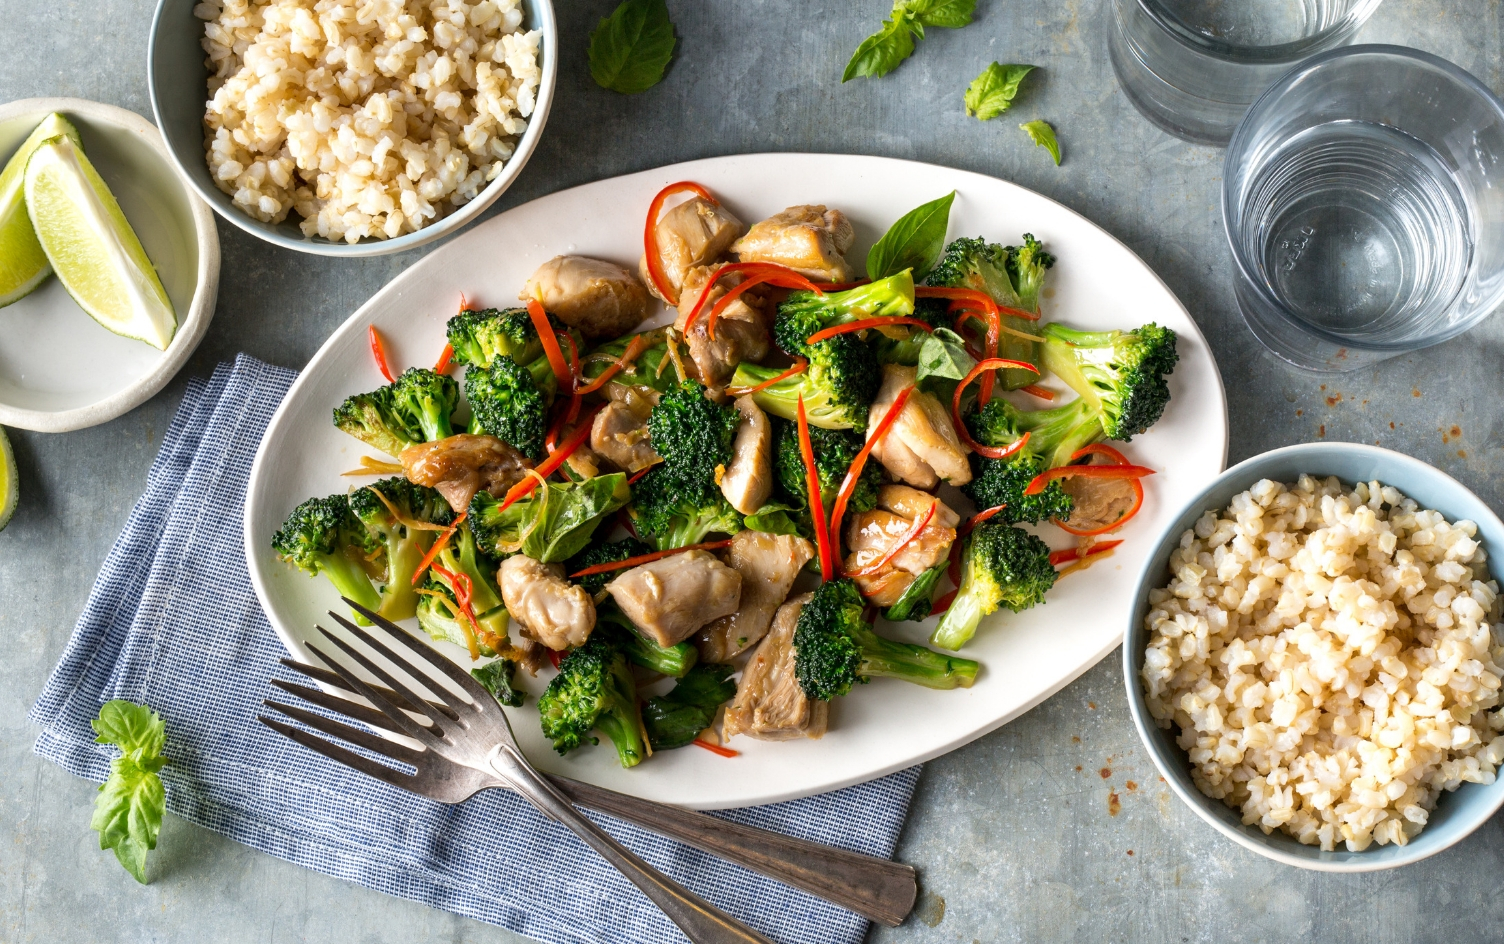 CHICKEN AND BROCCOLI STIR-FRY WITH BASIL  Under Armour x My Fitness Pal